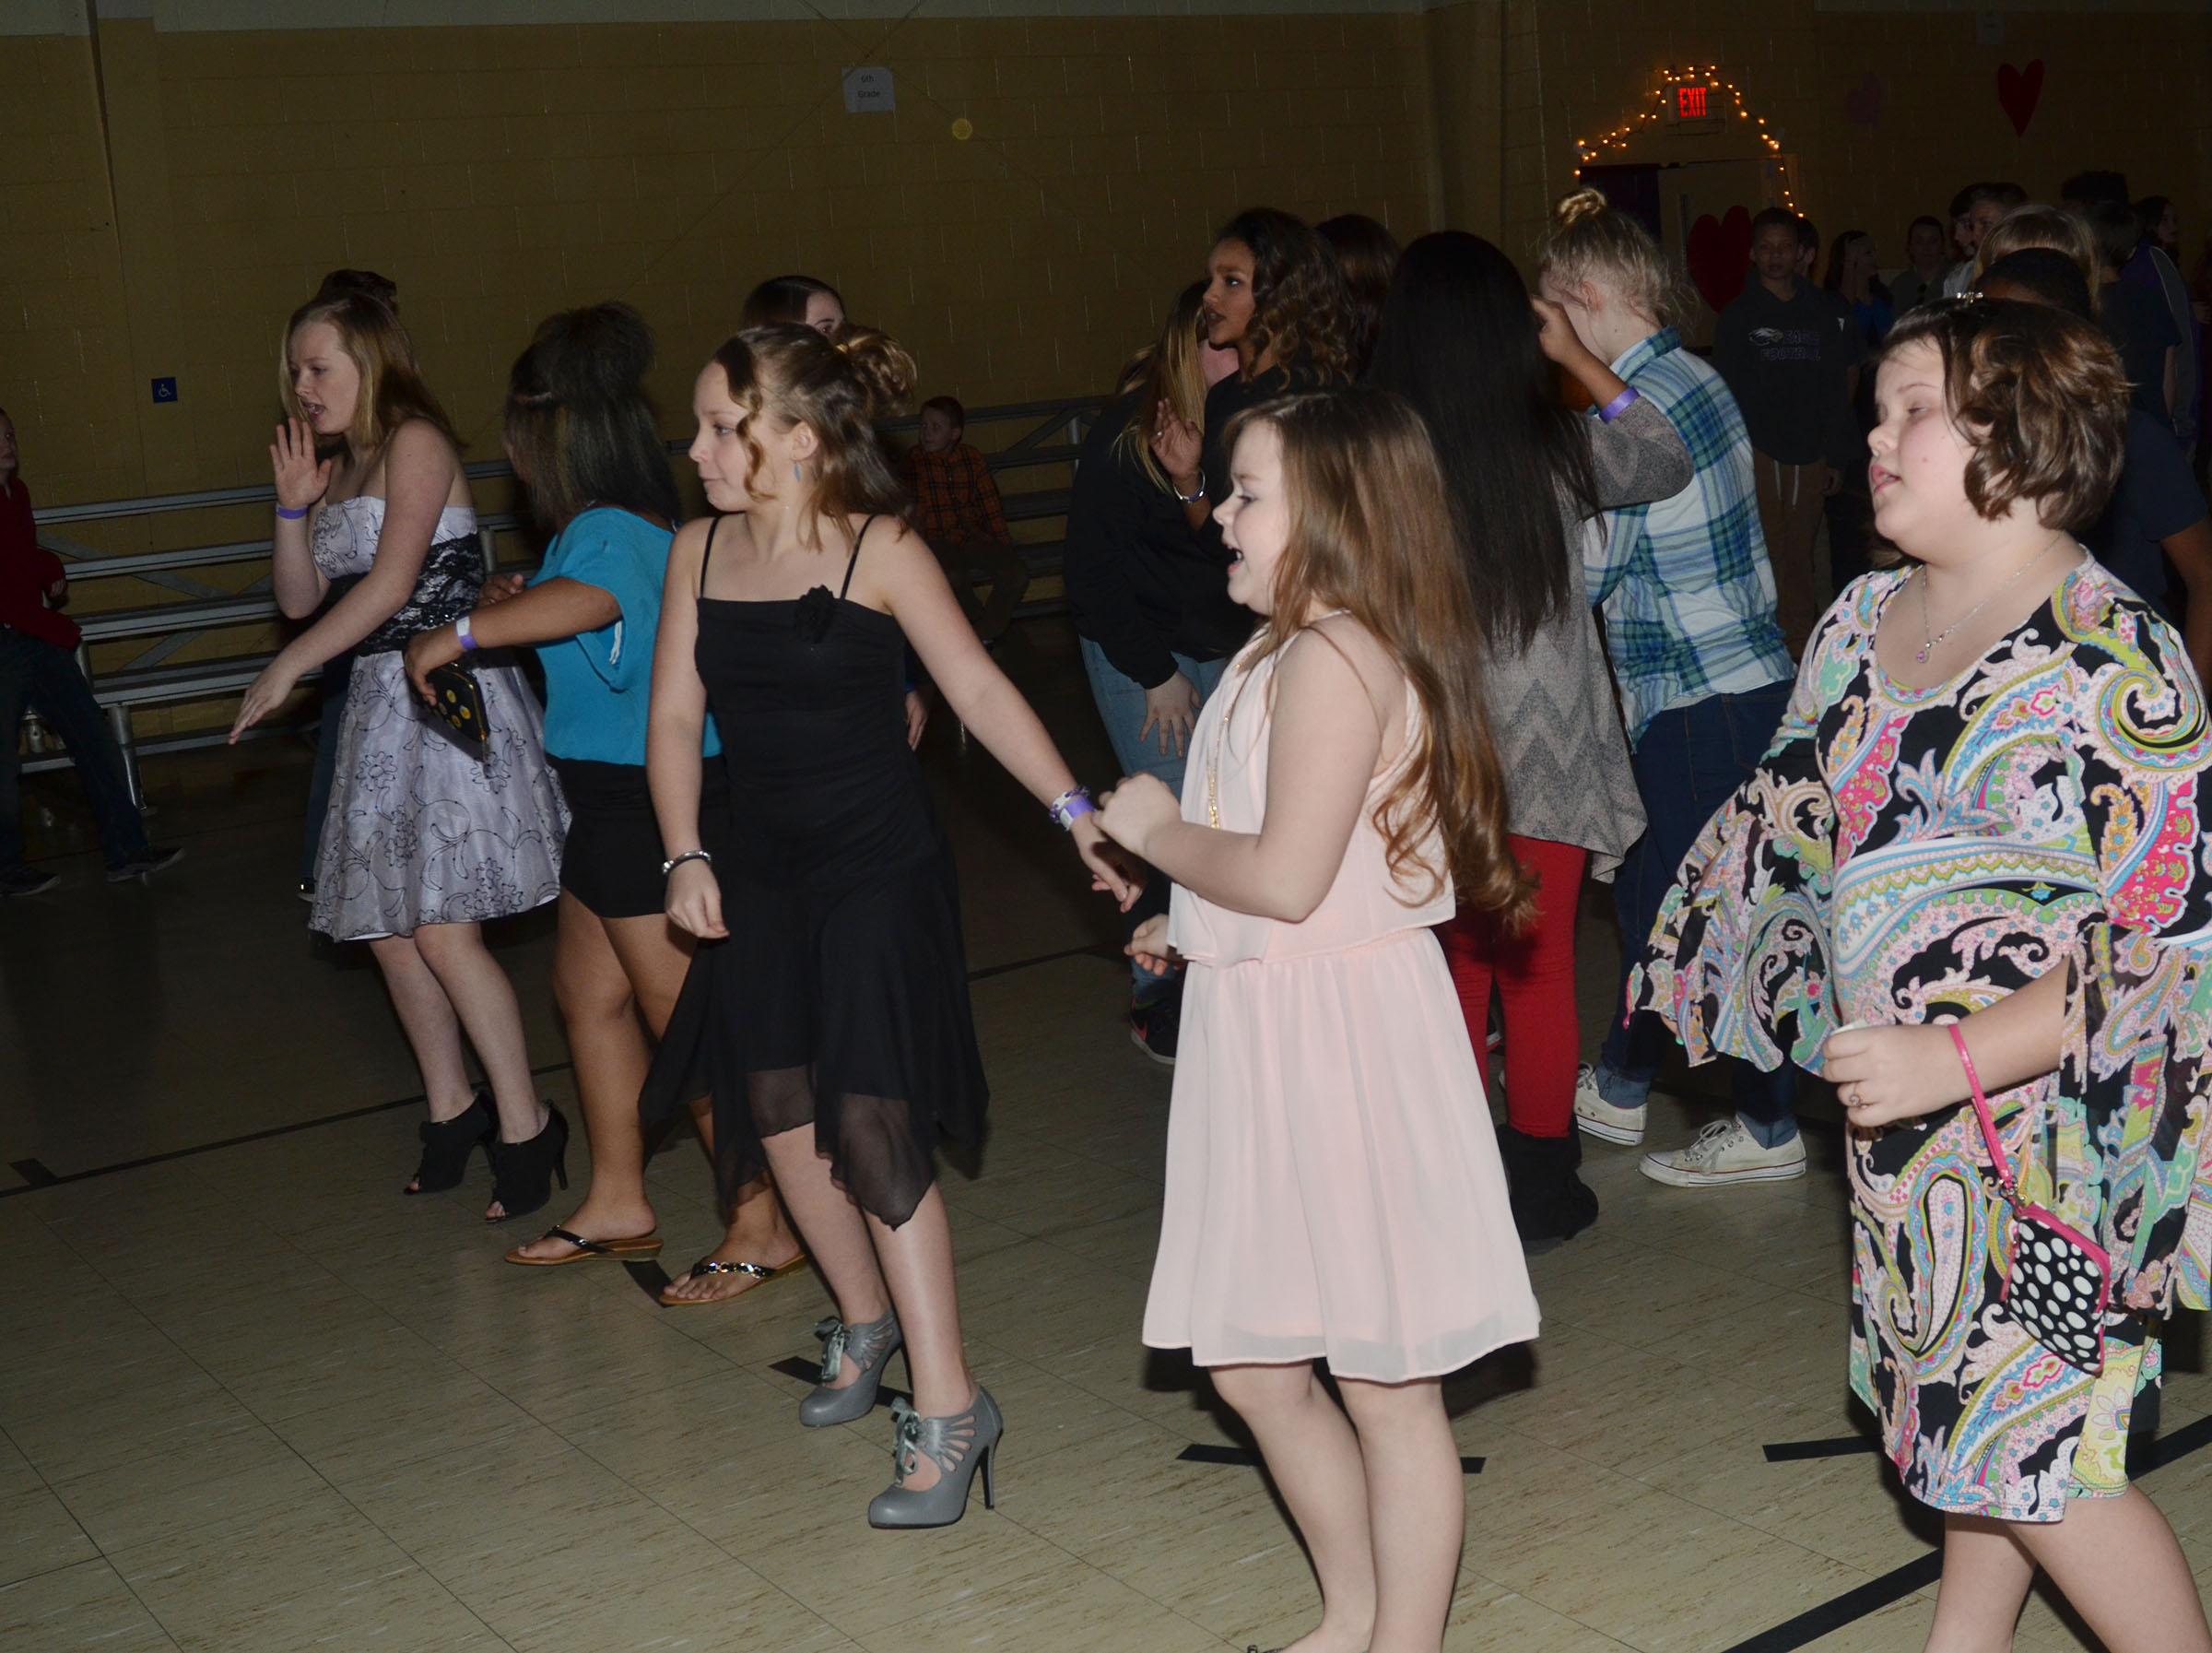 CMS students dance together.